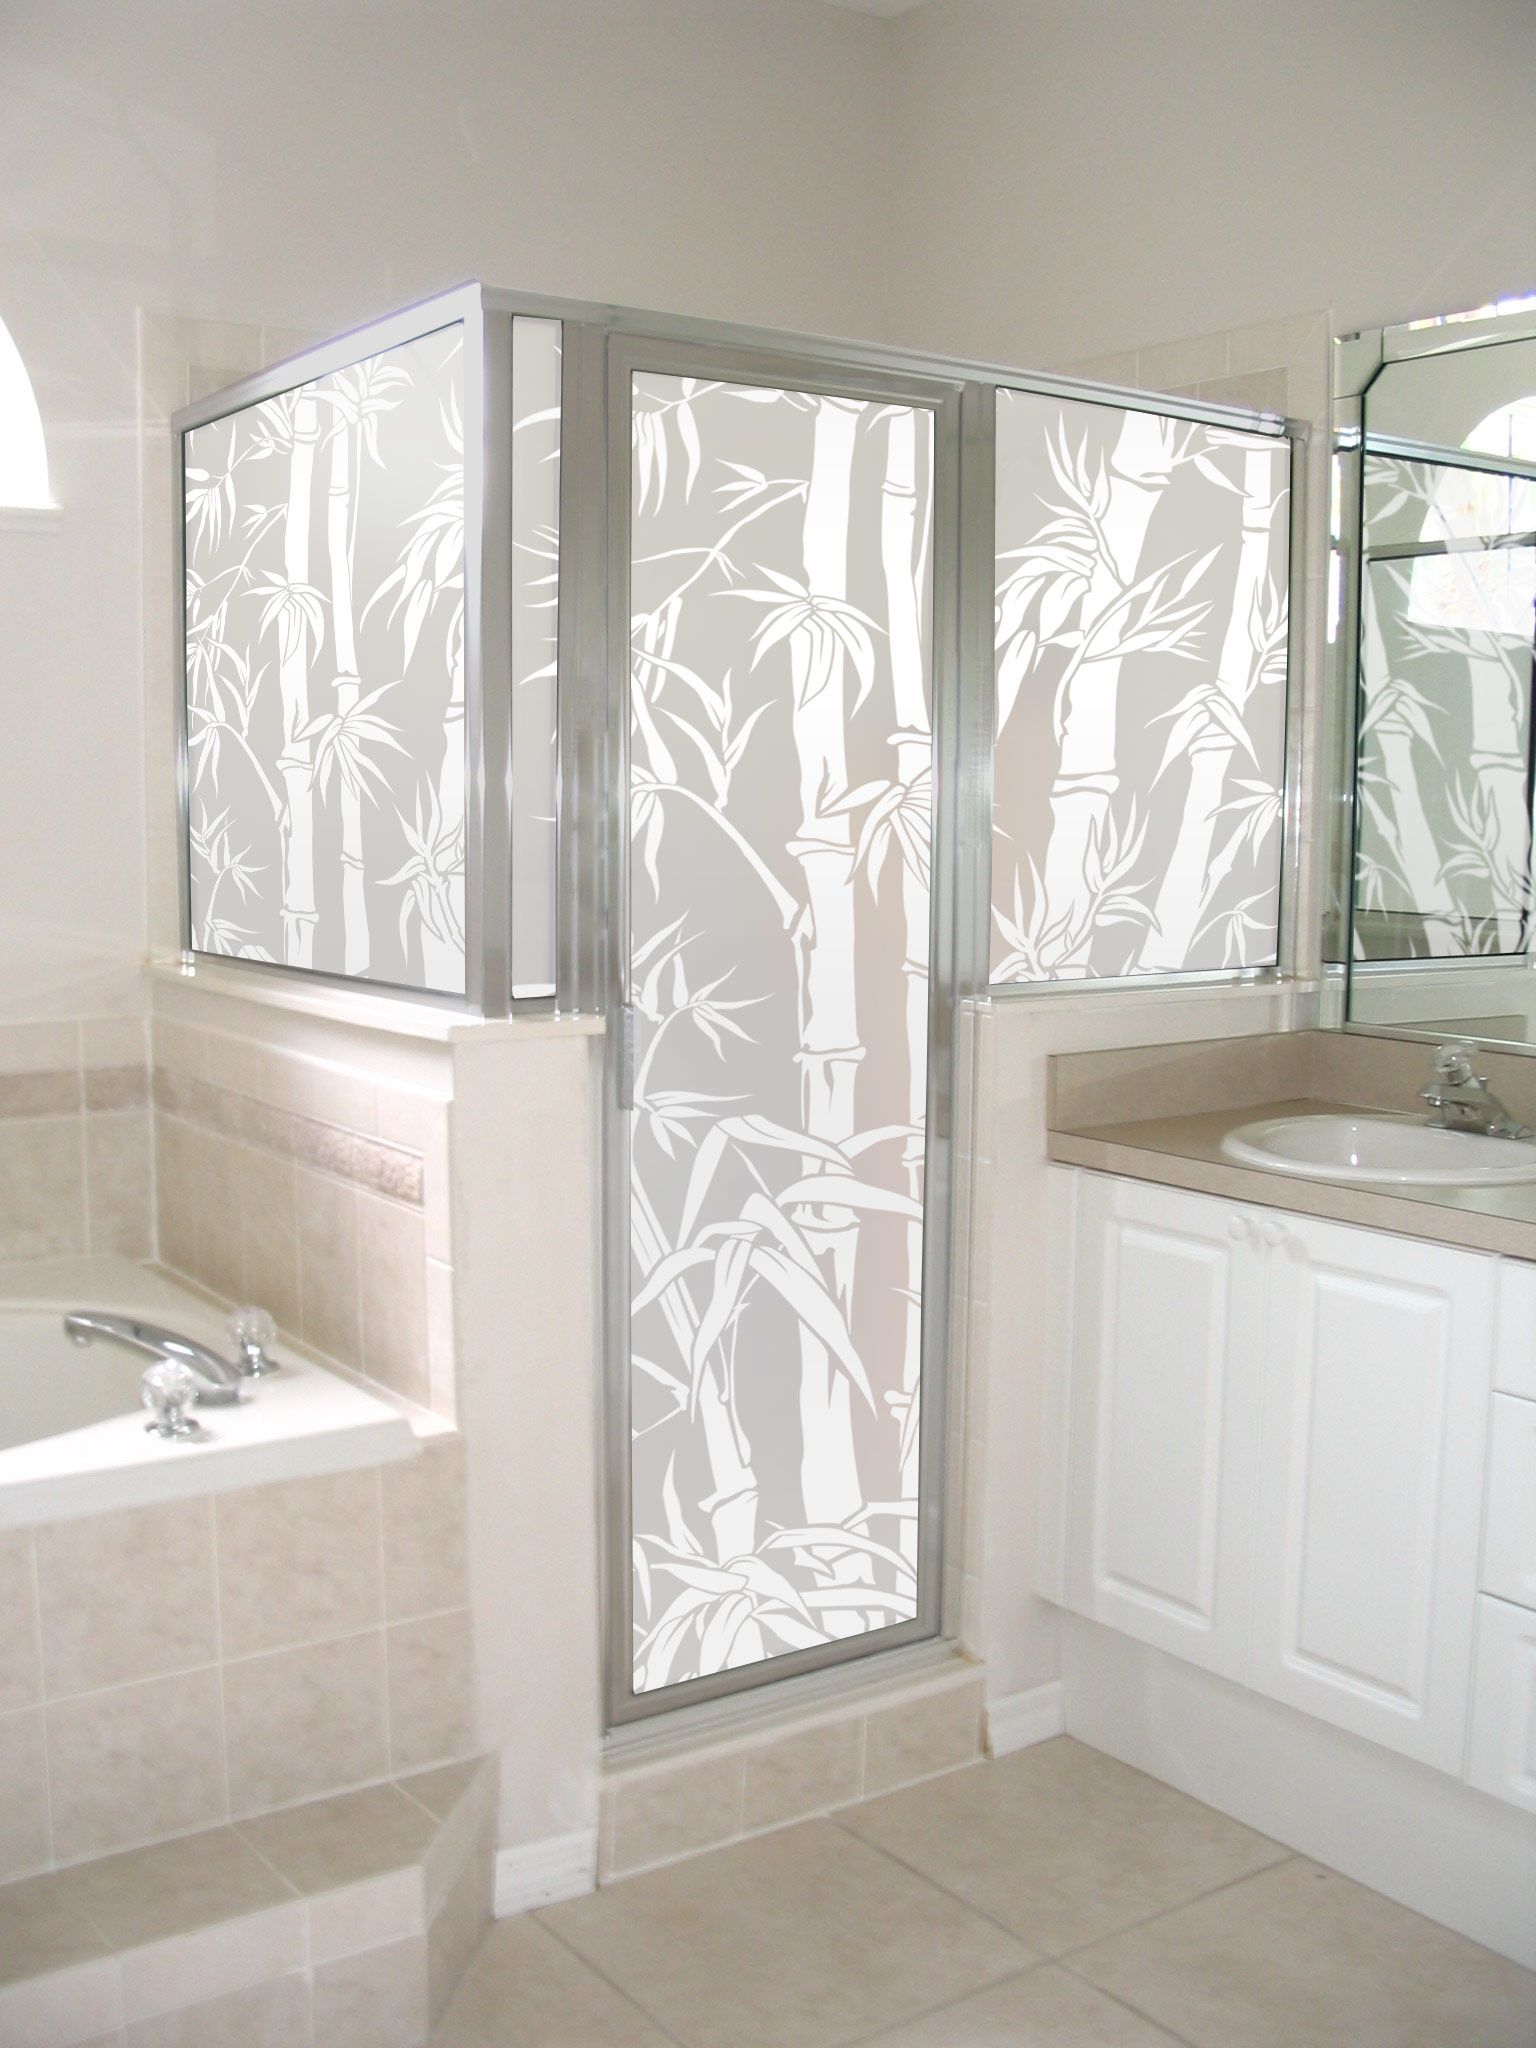 Etched glass doors privacy glass door inserts bamboo pictures to pin - Etched Glass Doors Privacy Glass Door Inserts Bamboo Pictures To Pin Big Bamboo Privacy Film Download